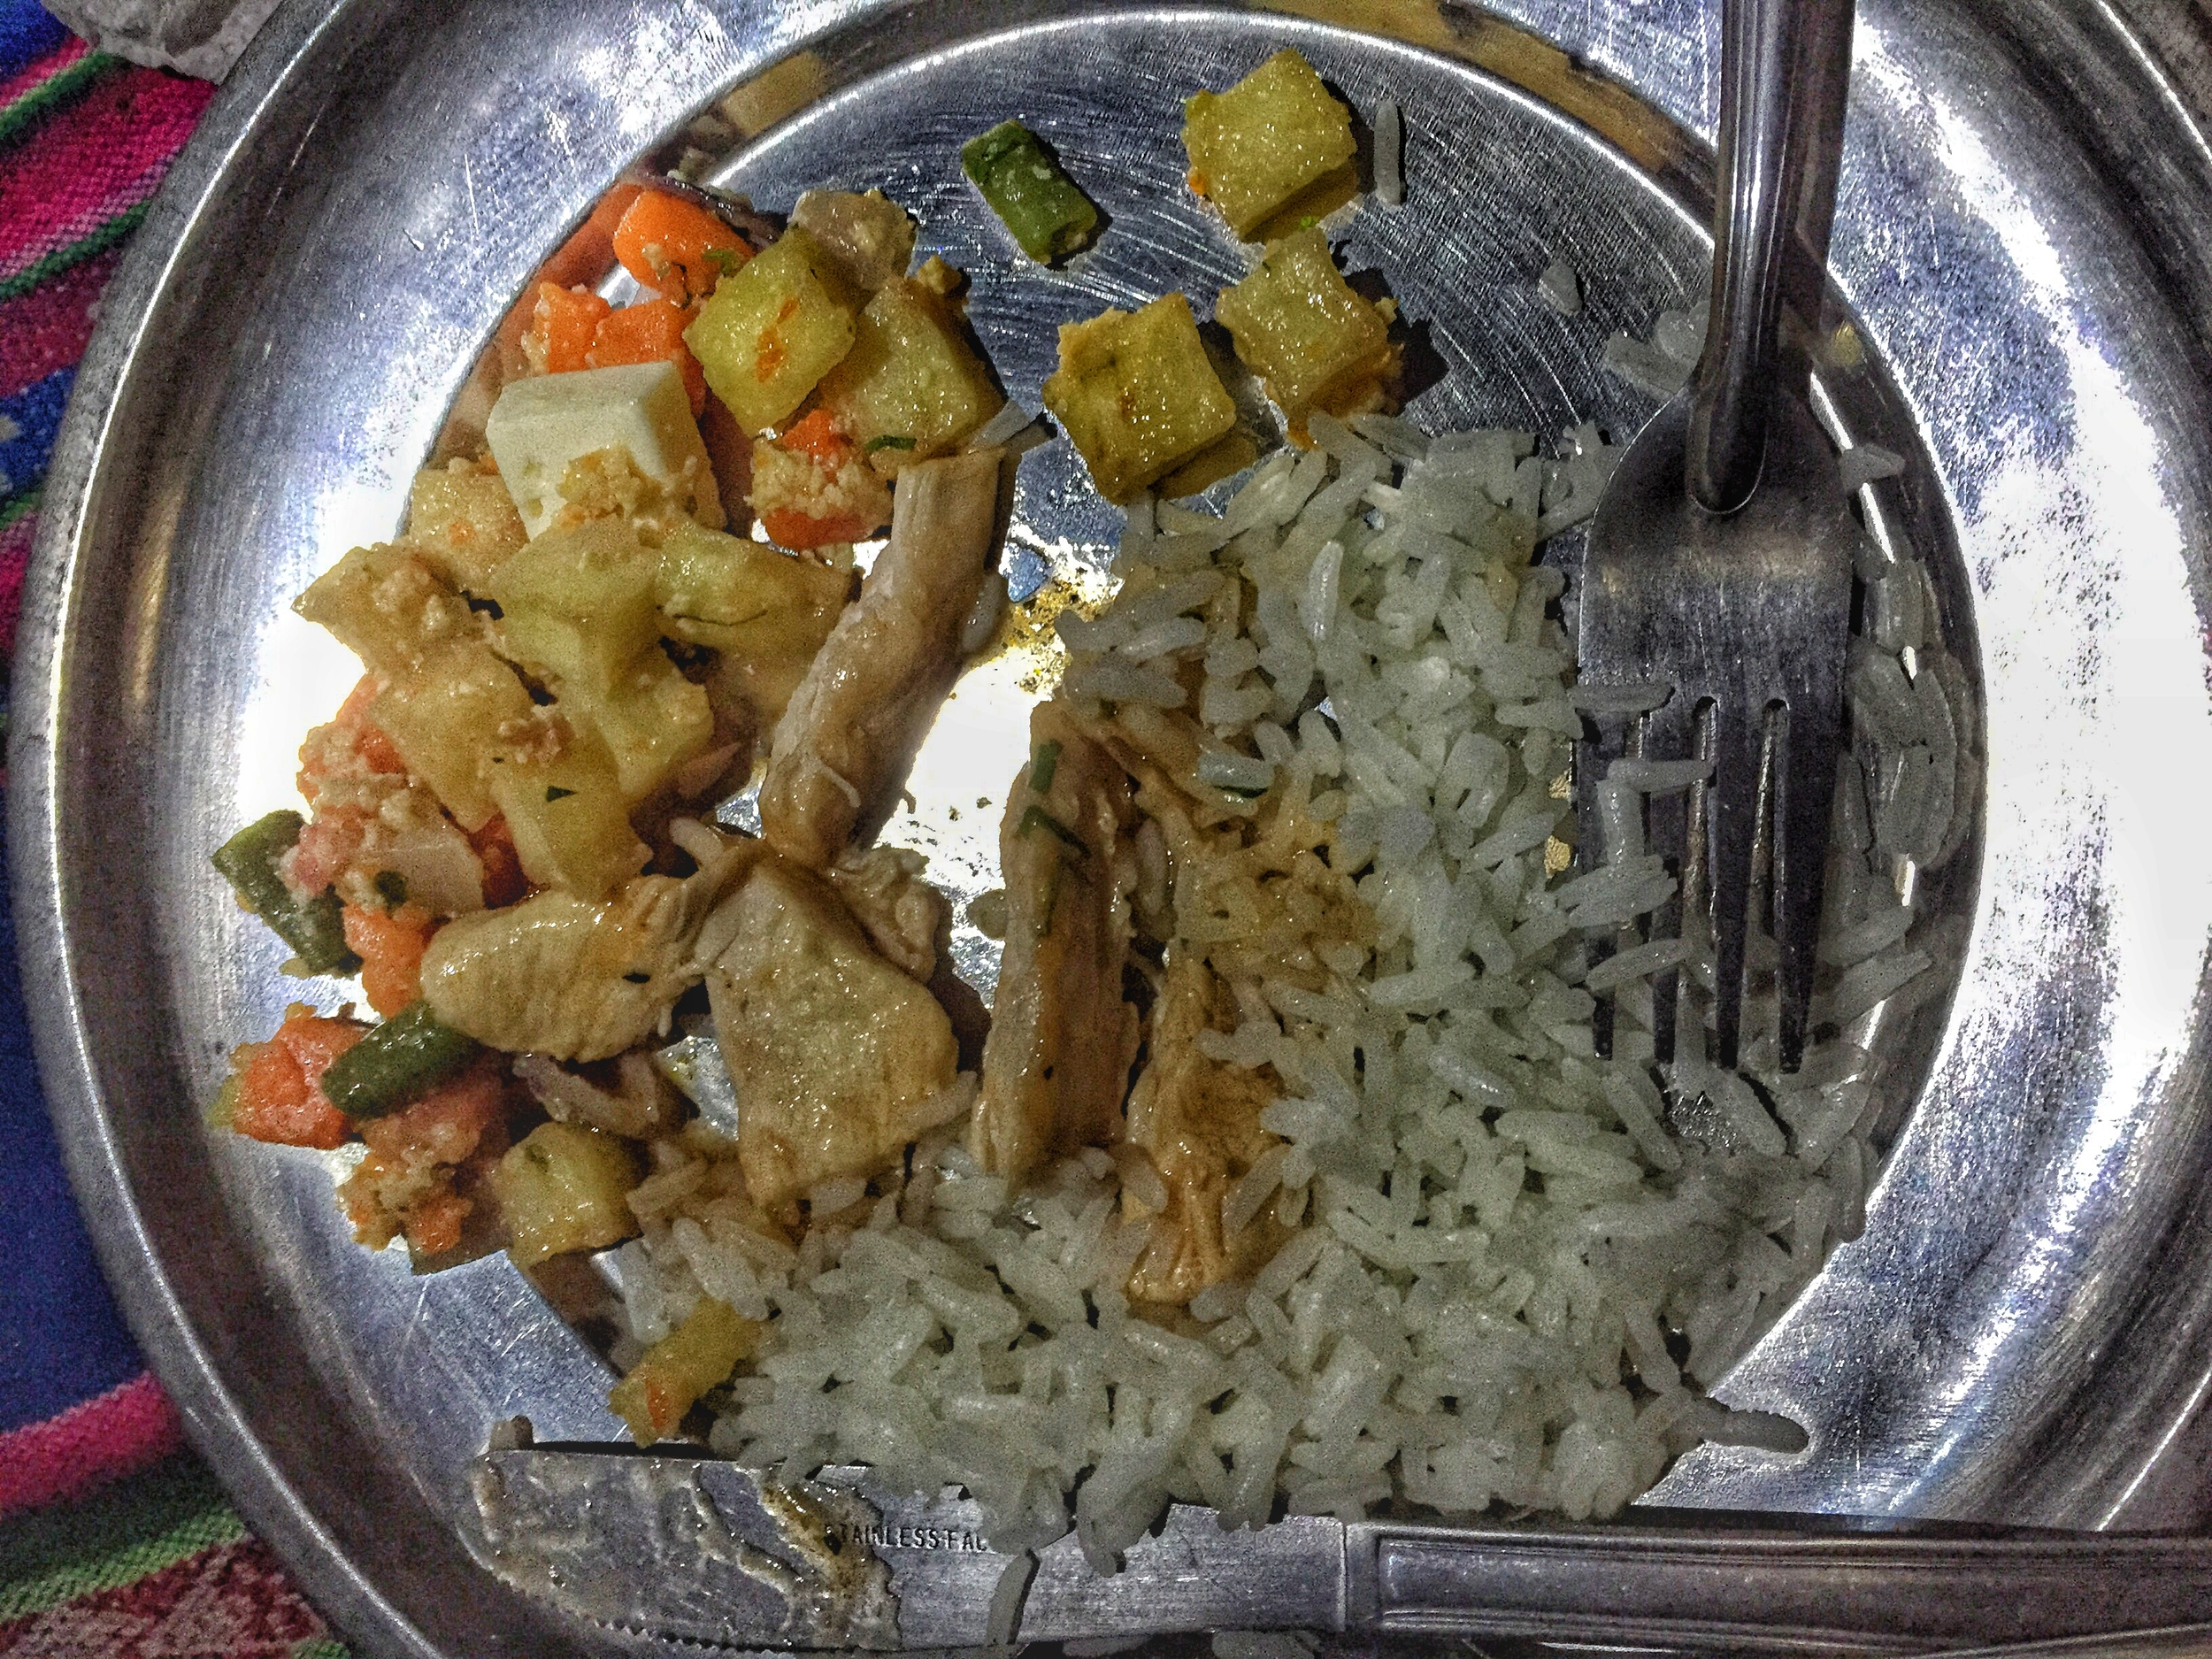 Food was prepared to ensure we had enough fuel for each portion of our hike. Carbohydrates from rice, potatoes and vegetables were a staple of our meals.